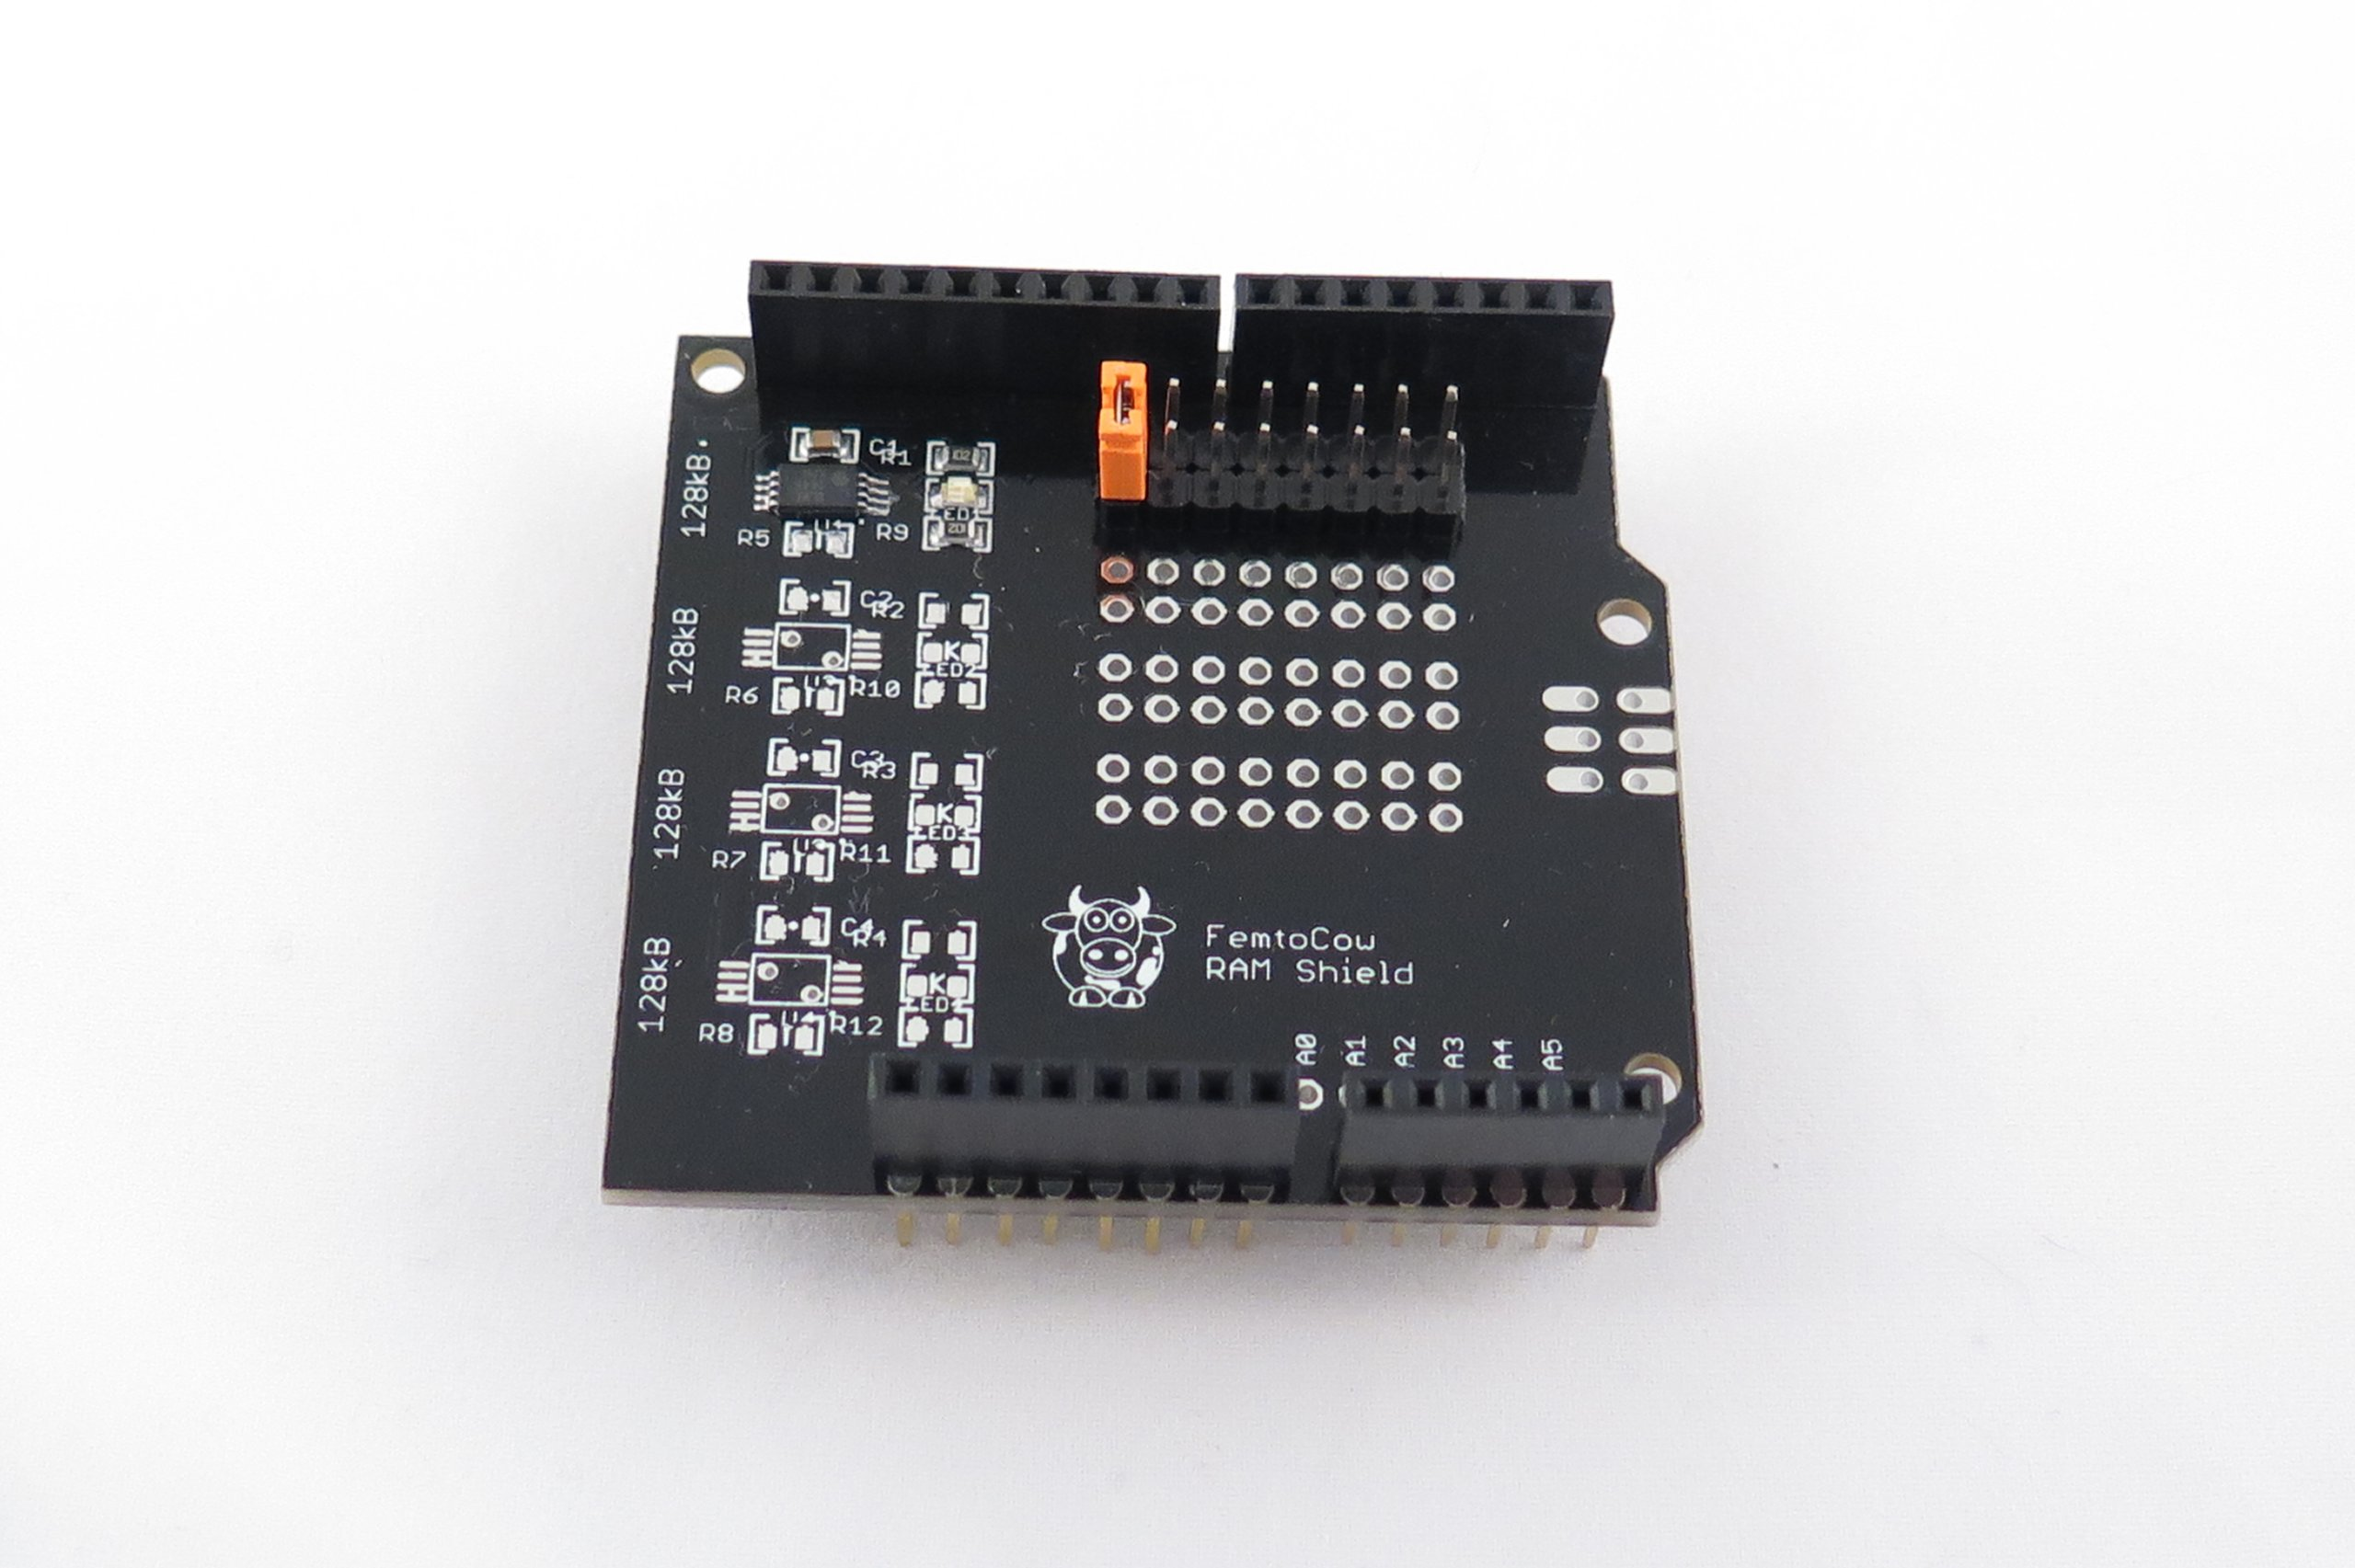 Spi ram shield for arduino from femtocow on tindie